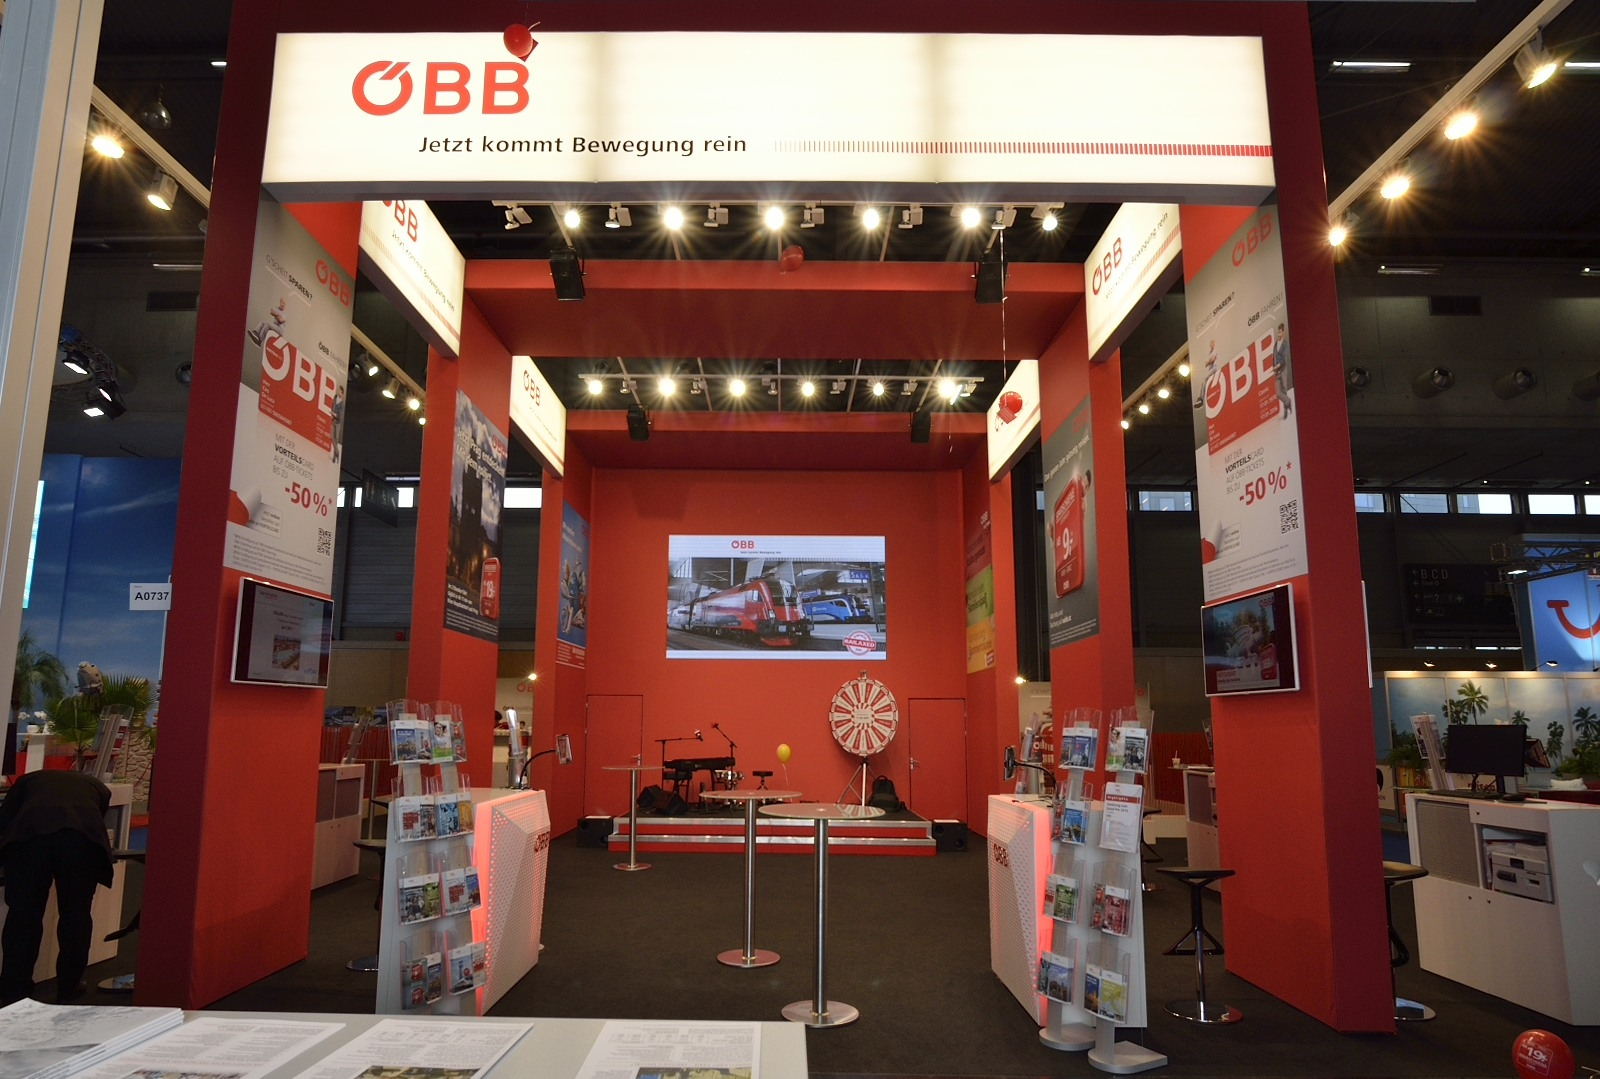 ÖBB Ferienmesse 2015, Messebau by KOOP Live Marketing Messen in Graz, Wien, Steyregg/Linz